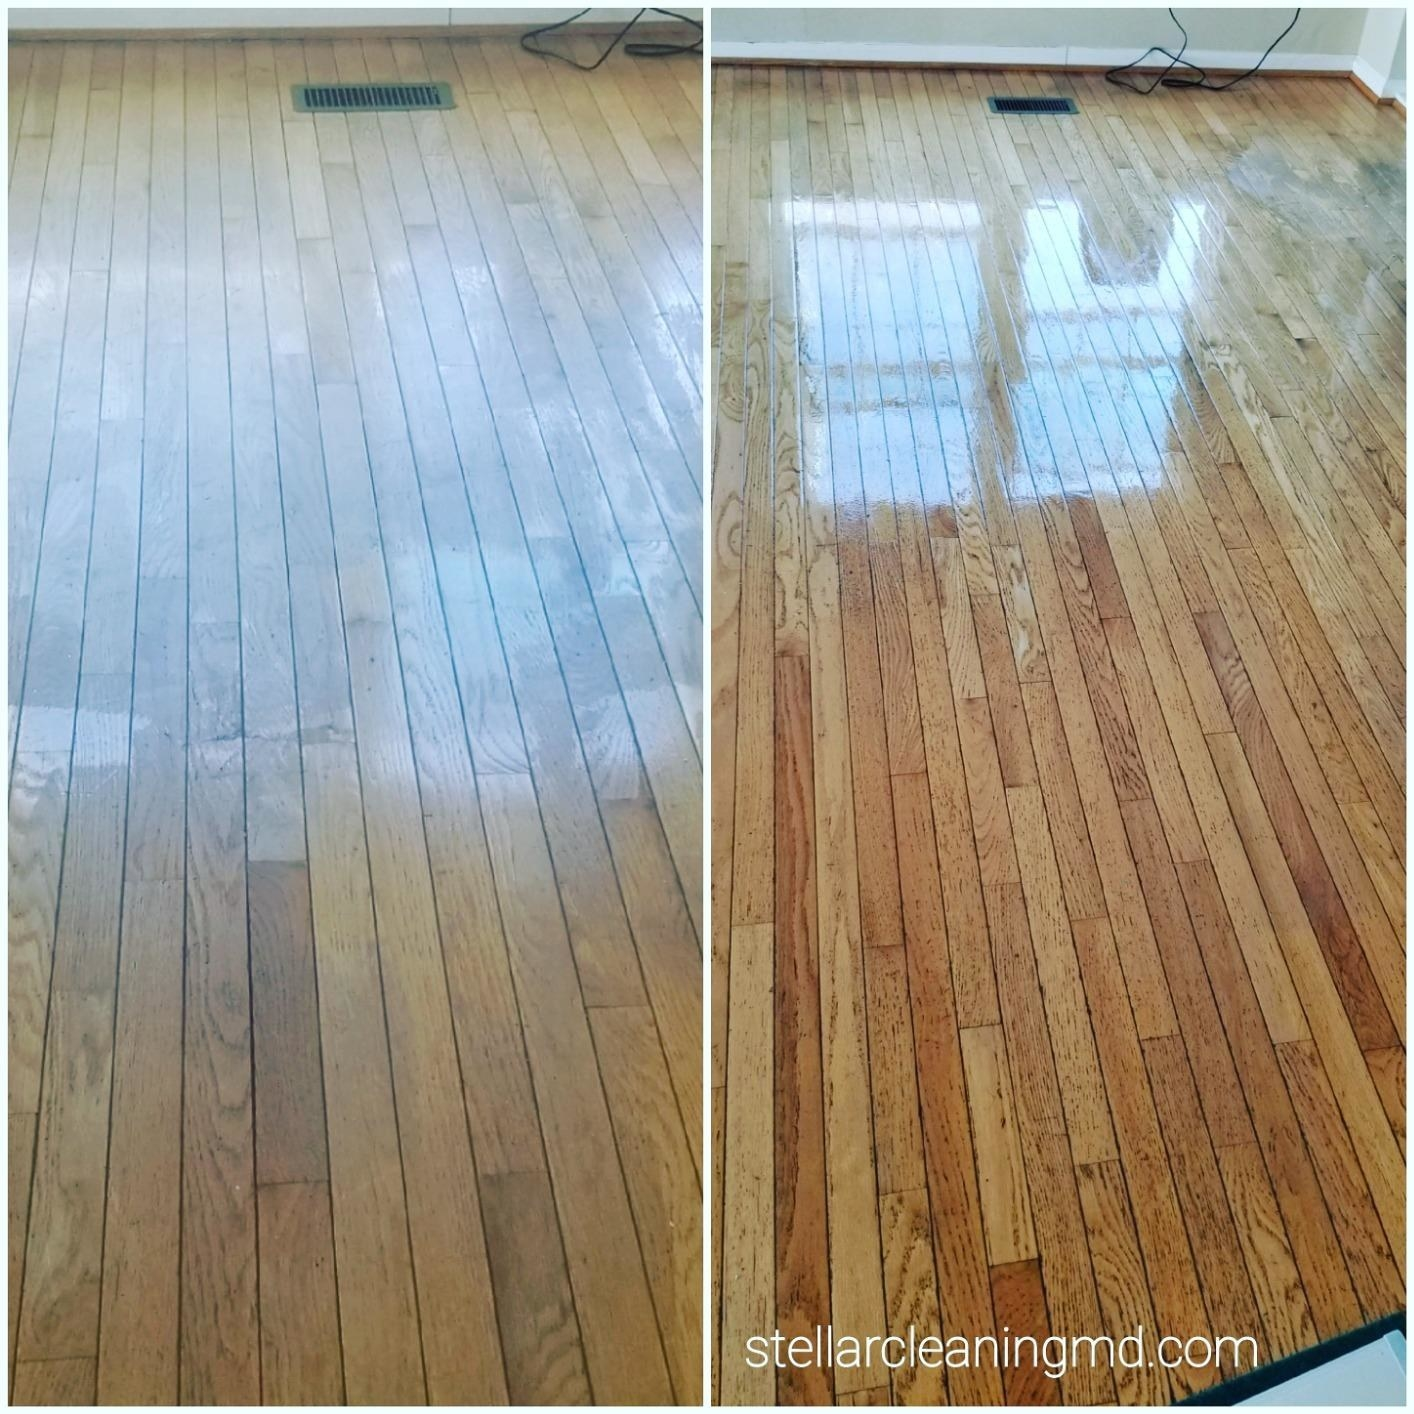 dull hardwood floors before the mop, and shiny hardwood floors after the mop